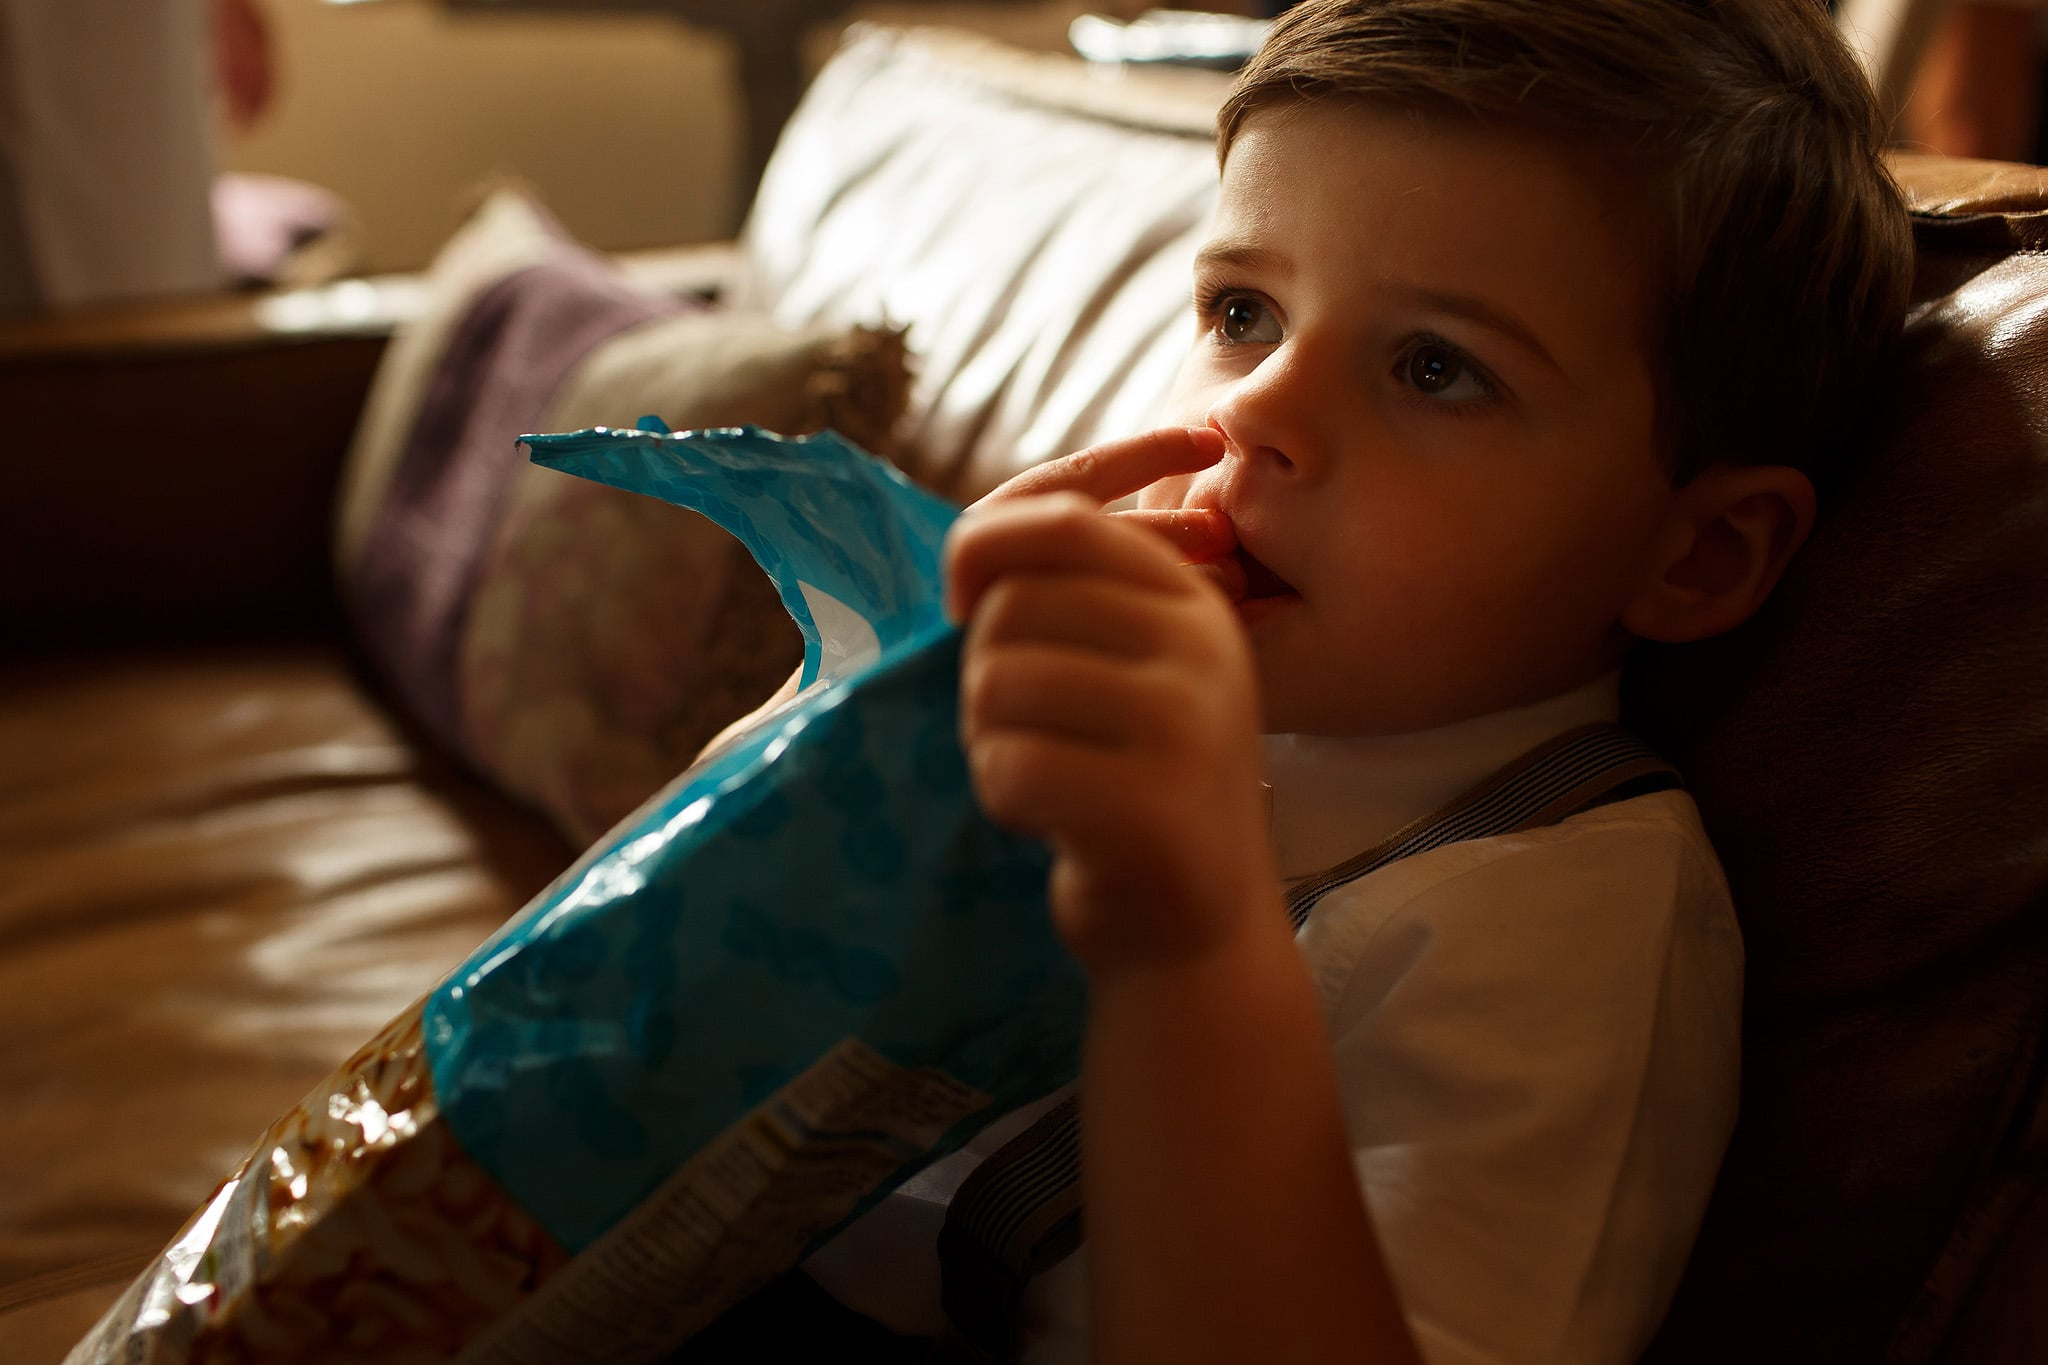 Pay boy eating family size bag of crisps at wedding